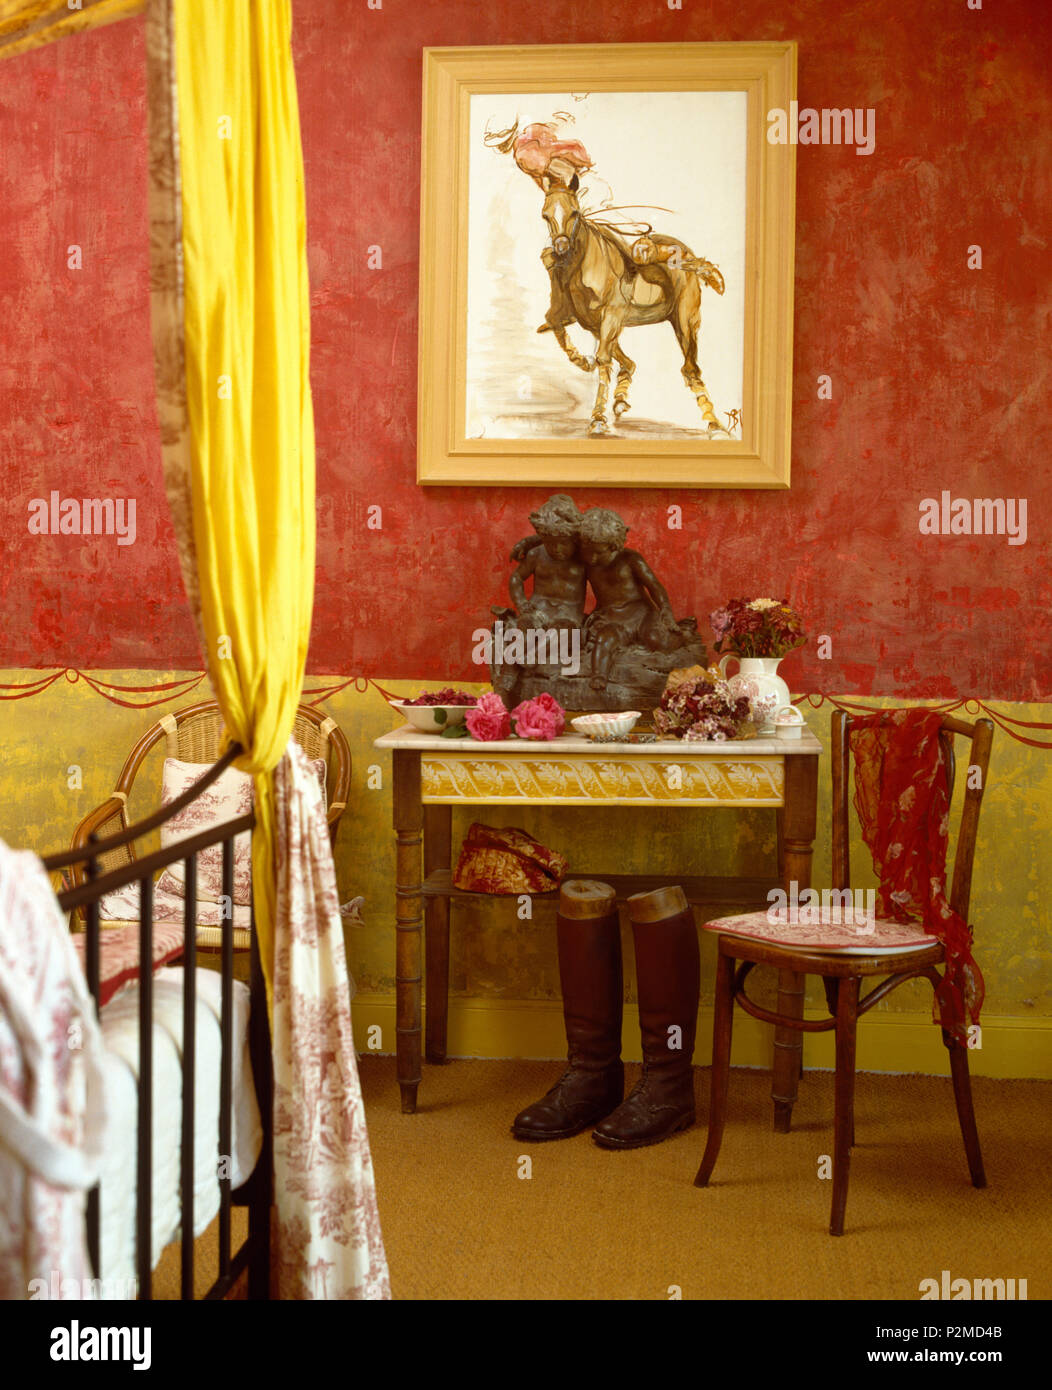 Painting On Wall Above Small Marble Topped Table With Antique Chair In Red Apartment Bedroom Stock Photo Alamy